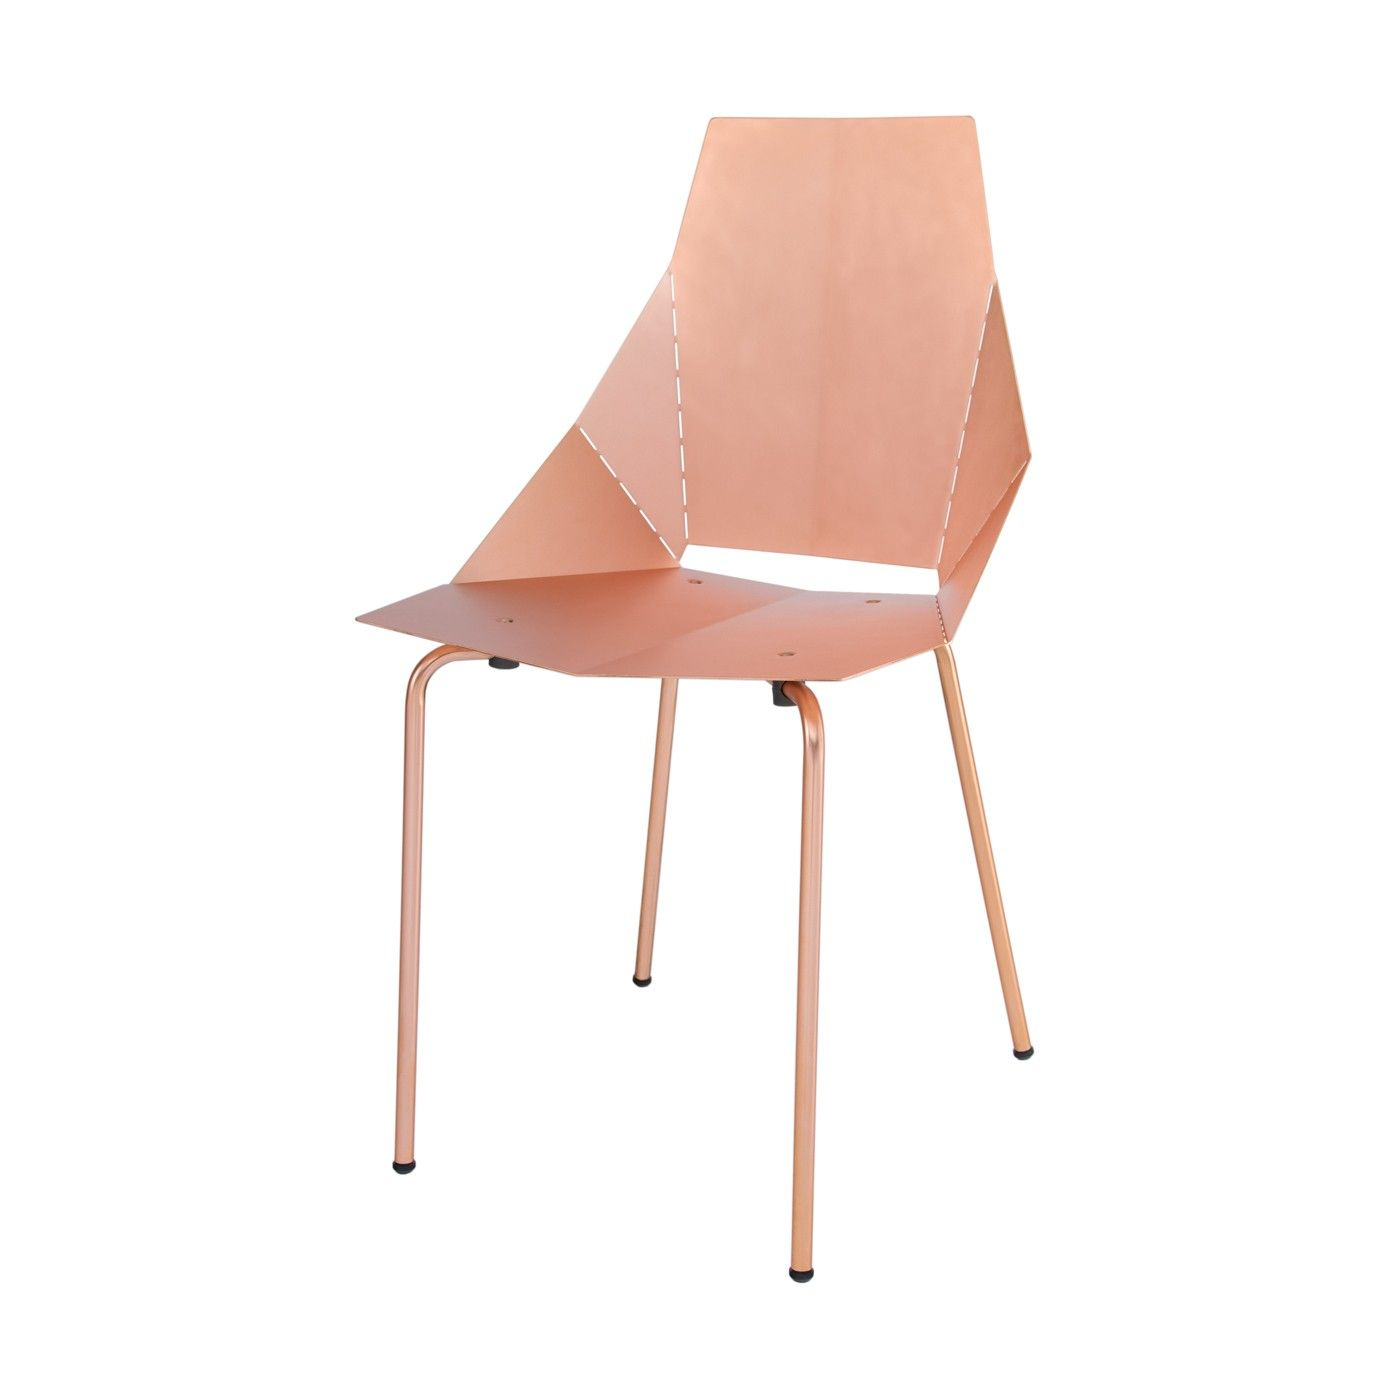 Copper Real Good Chair, Worth Every Penny. A Modern Dining Chair Uniquely  Crafted With Copper Finish. Copper Dining Chairs And Modern Seating At Blu  Dot.